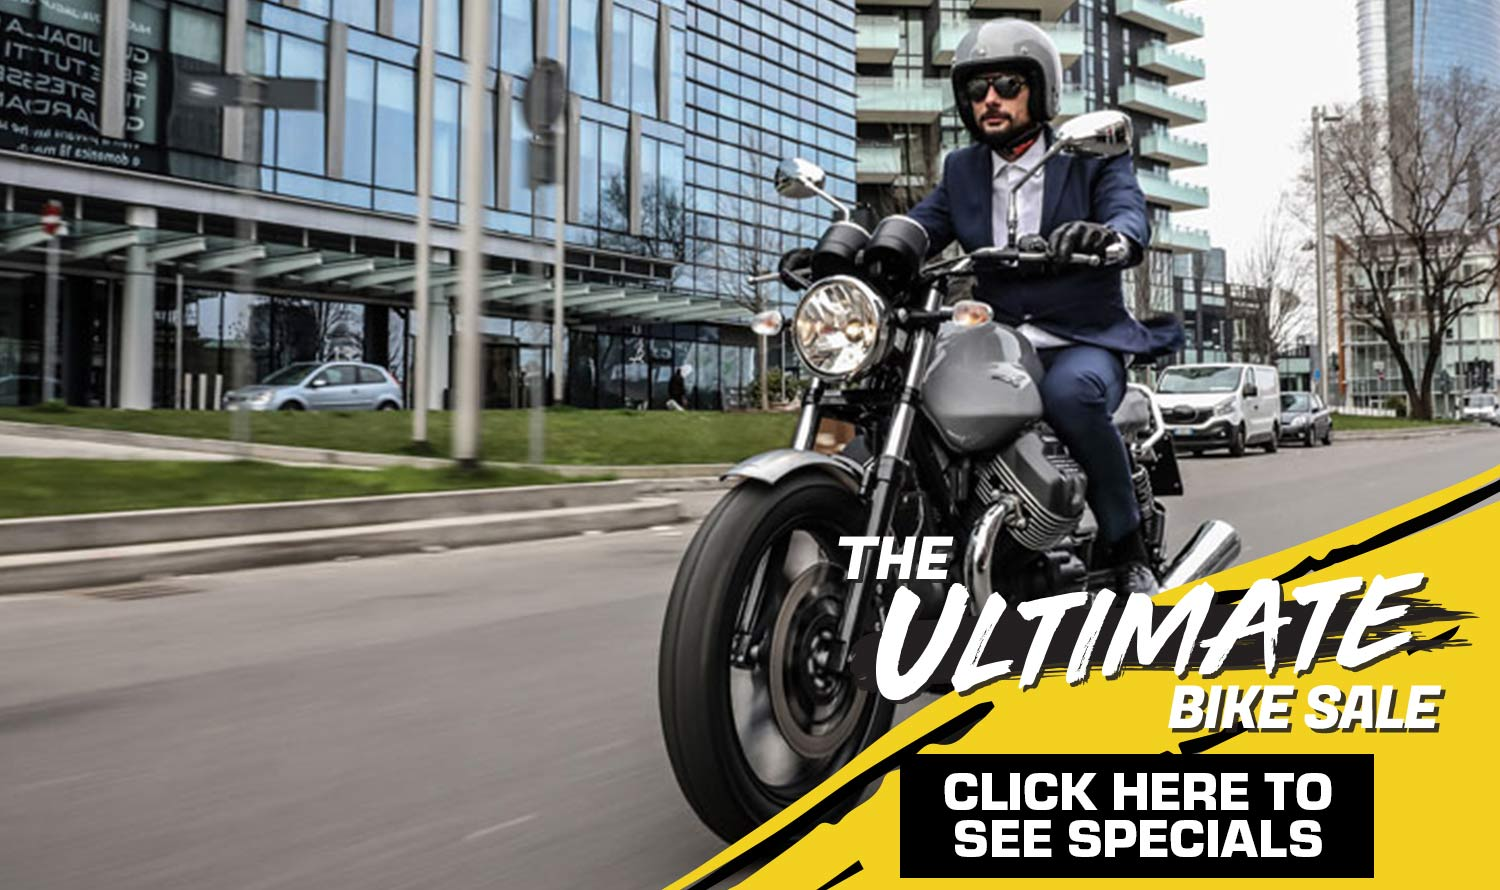 Ultimate-HPB-MotoGuzzi-Nov18-SM